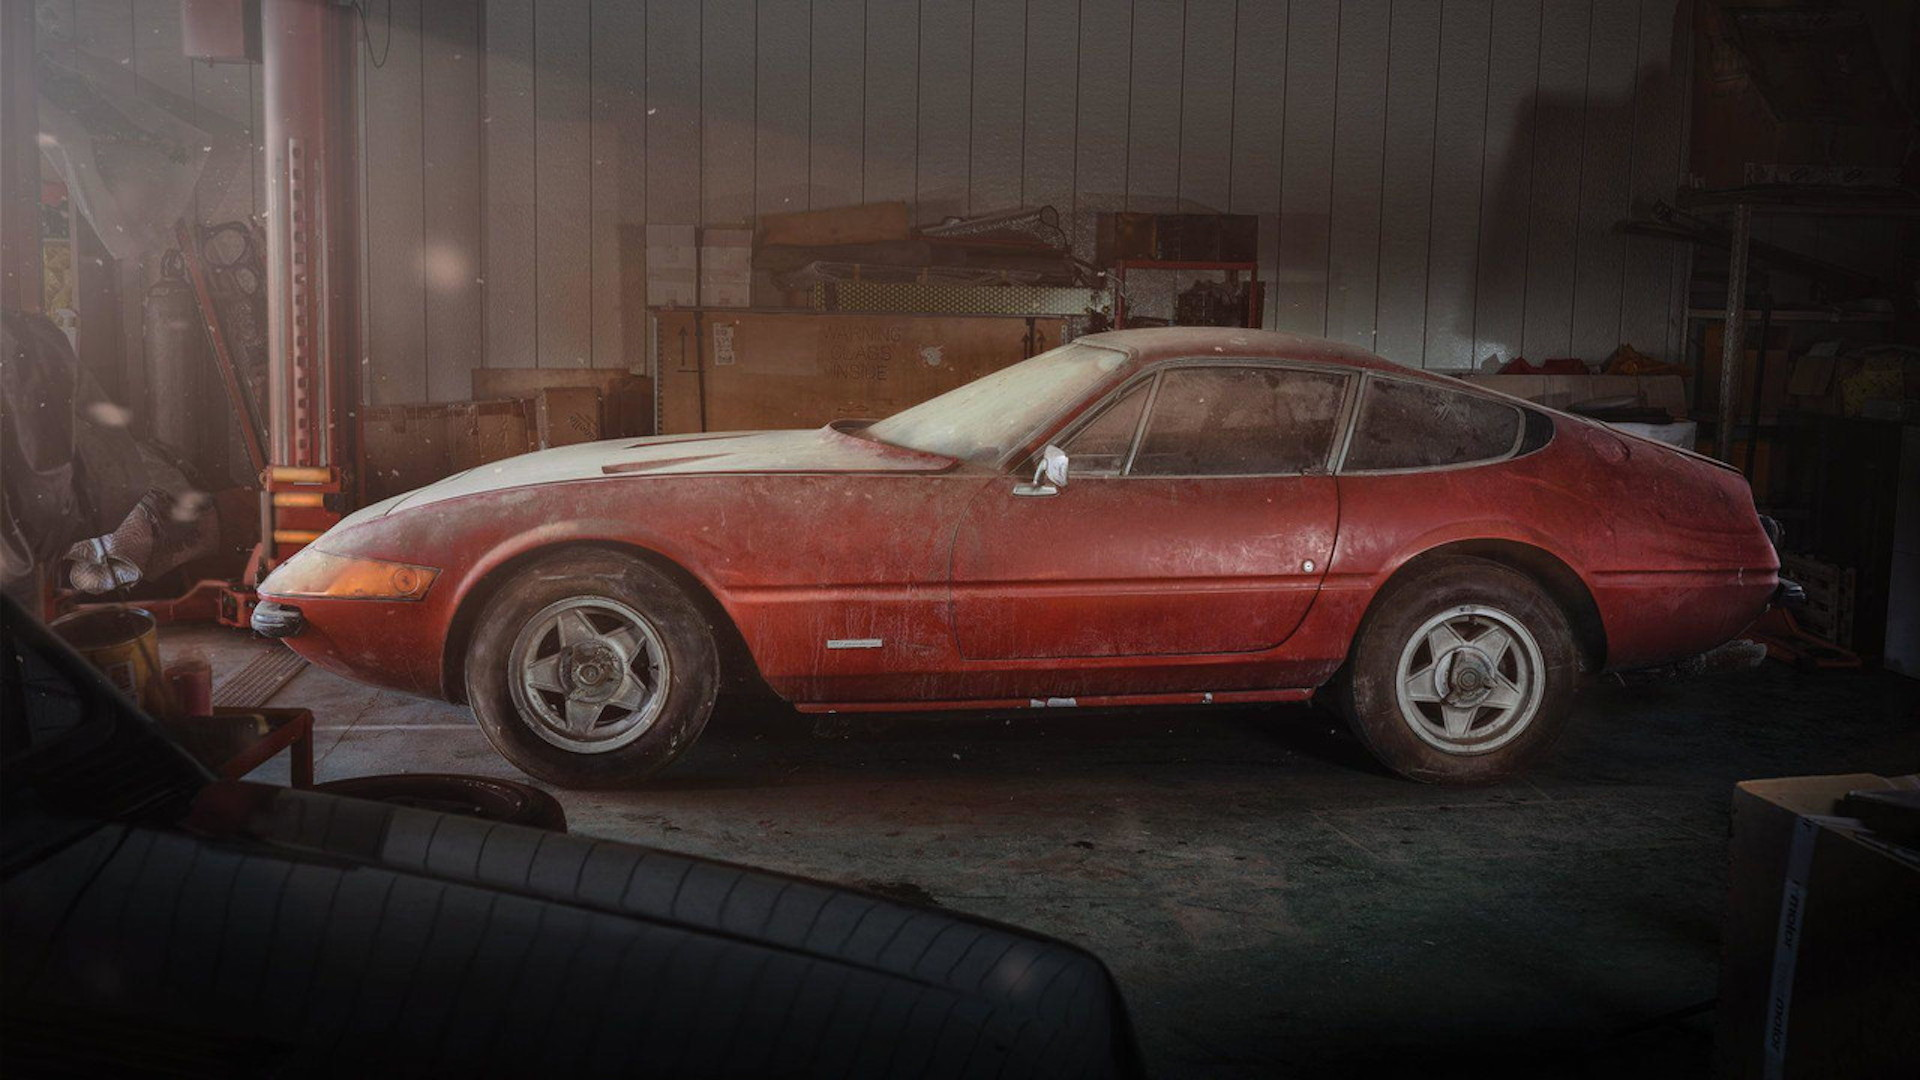 One-off 1969 Ferrari Daytona Alloy